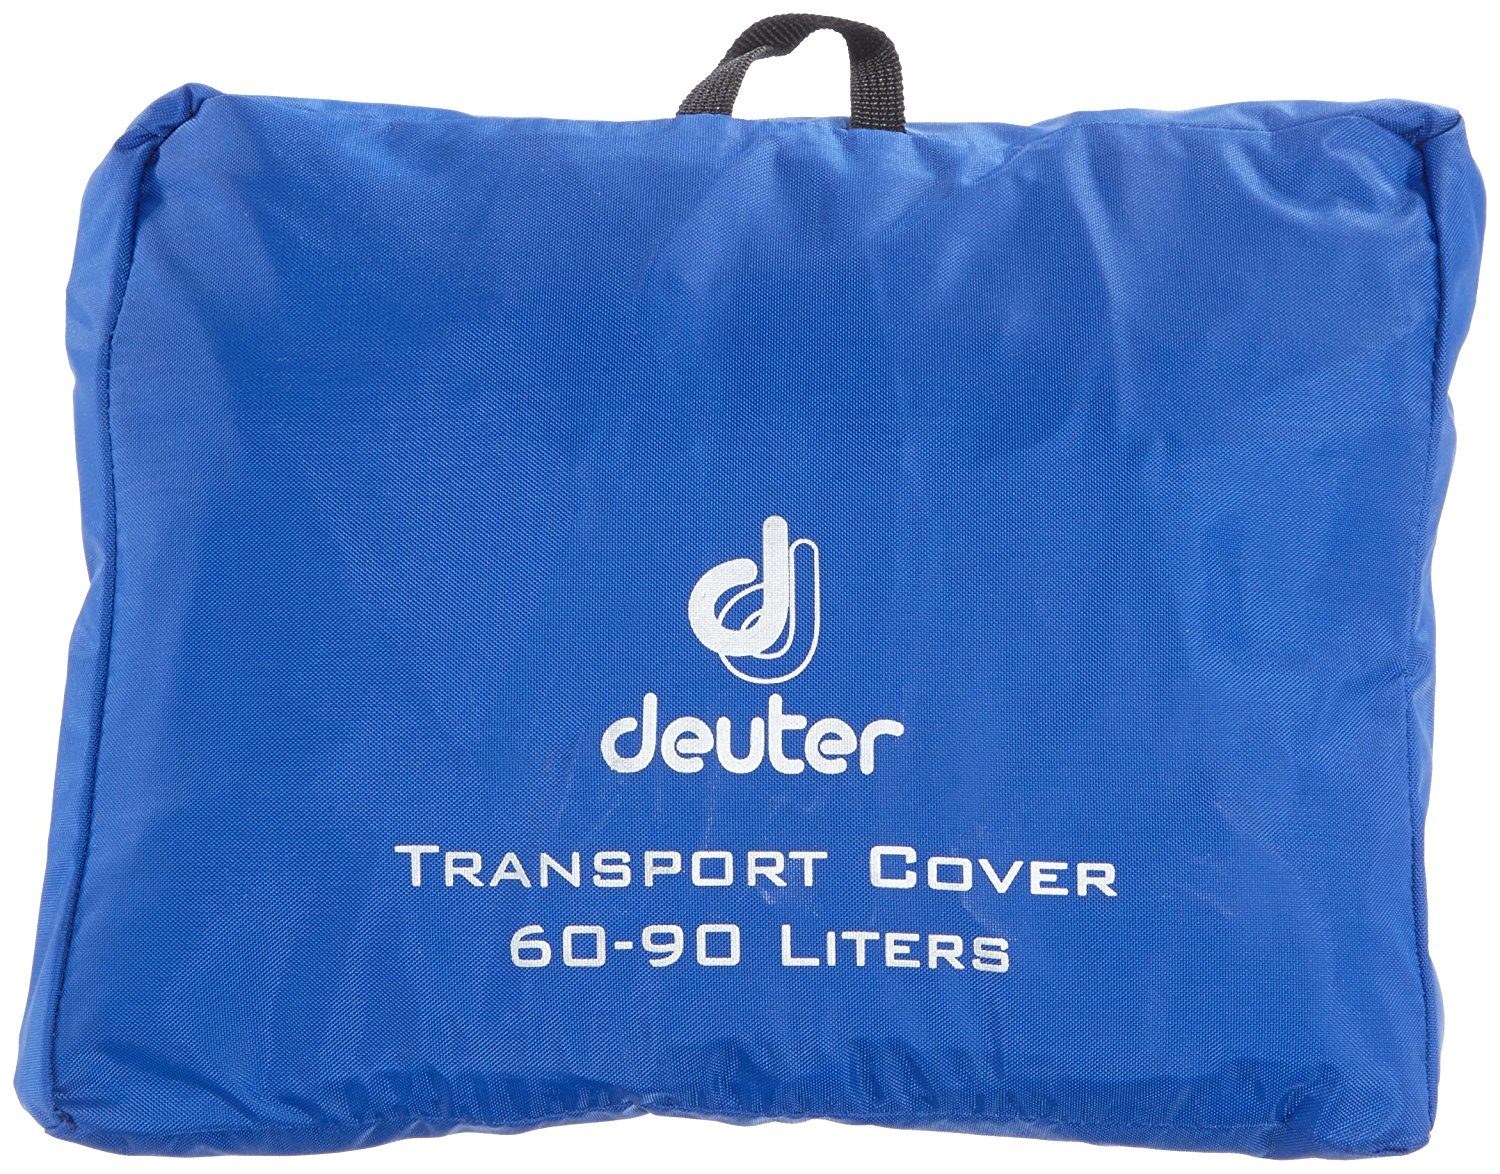 transport cover Deuter